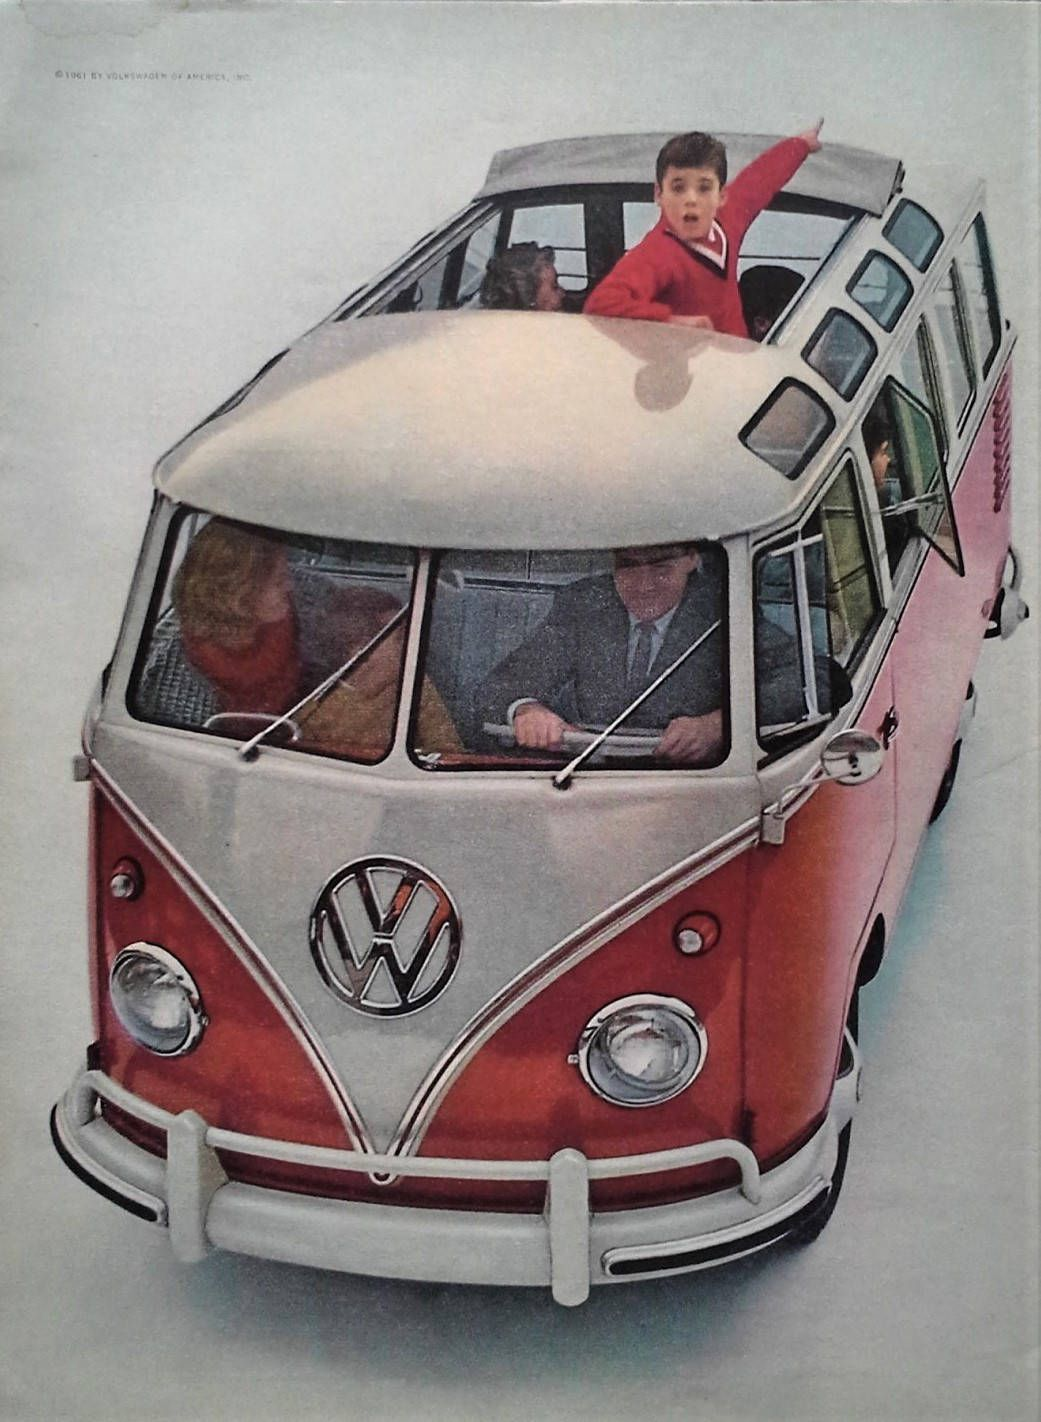 Hippie Photo Booth Frame Groovy Photo Booth Prop Vw Bus Photo